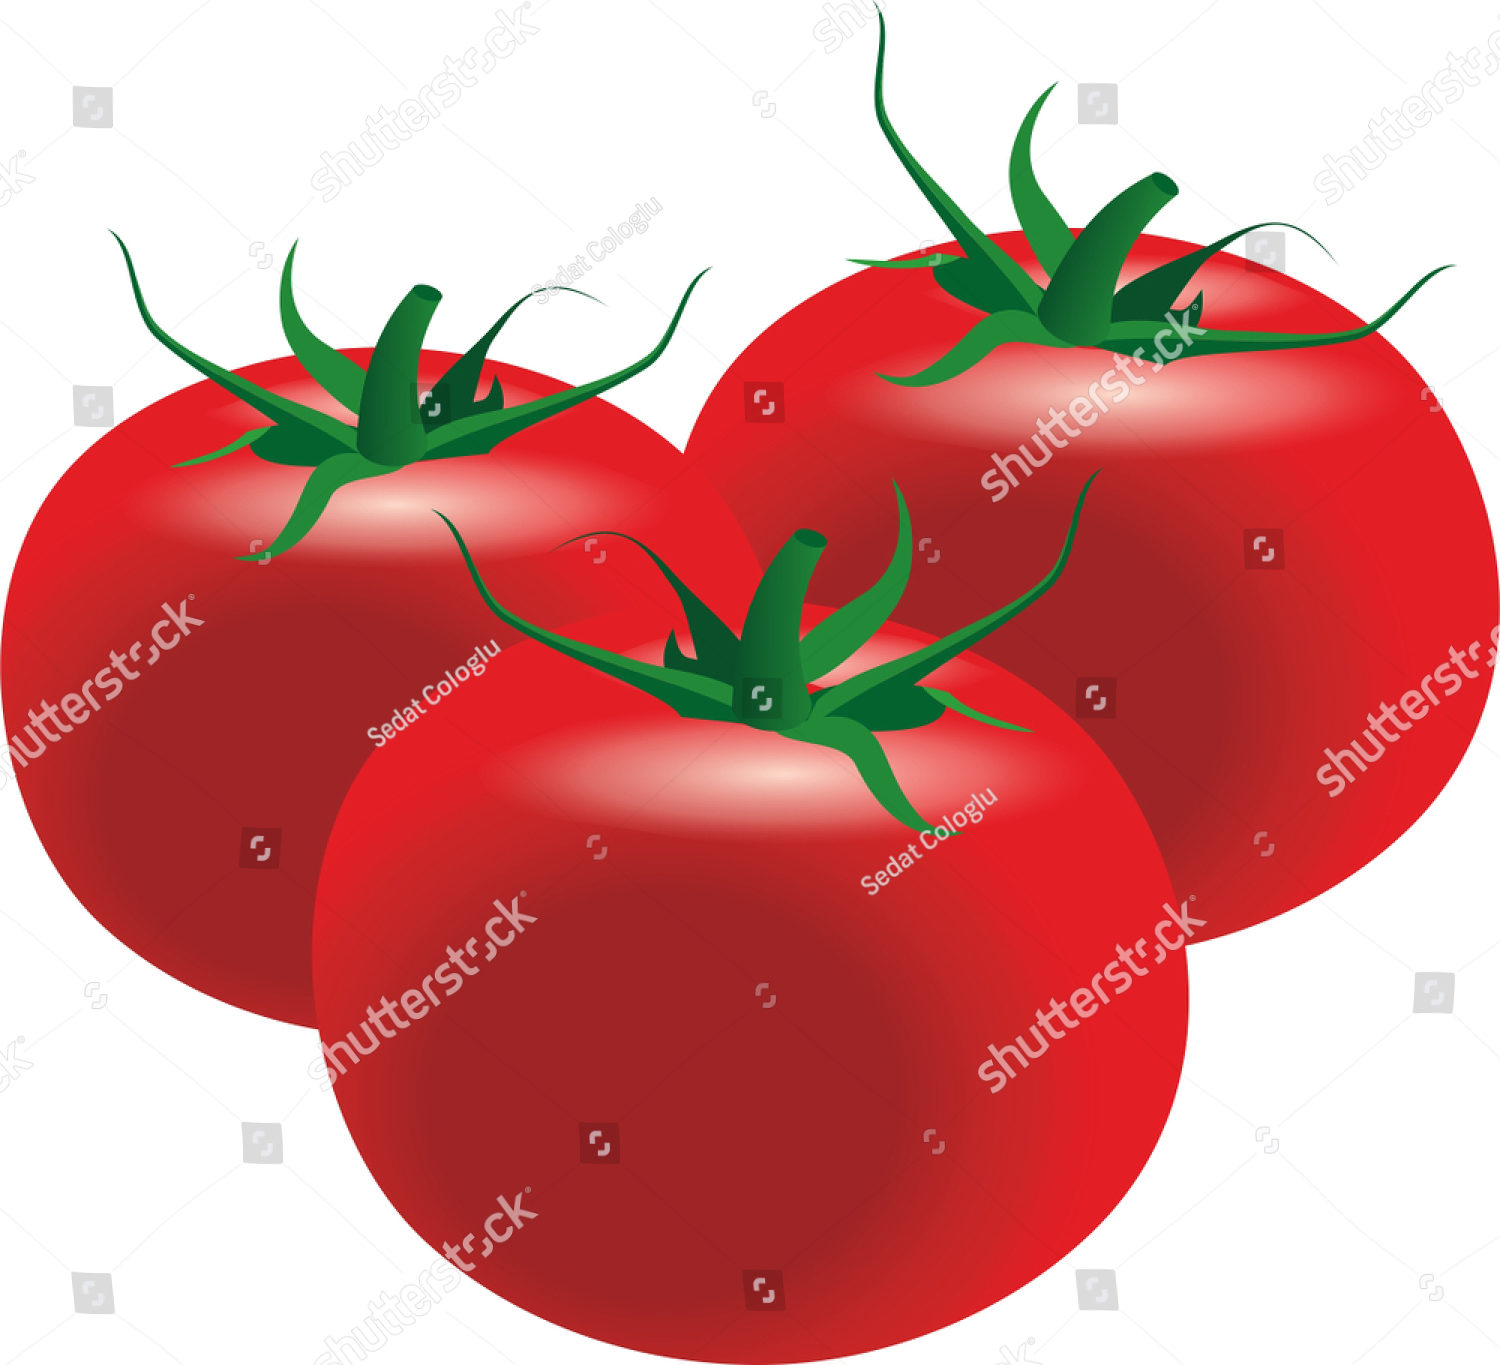 stock-photo-fresh-tomato-side-view-white-background-color-illustration-1441130864